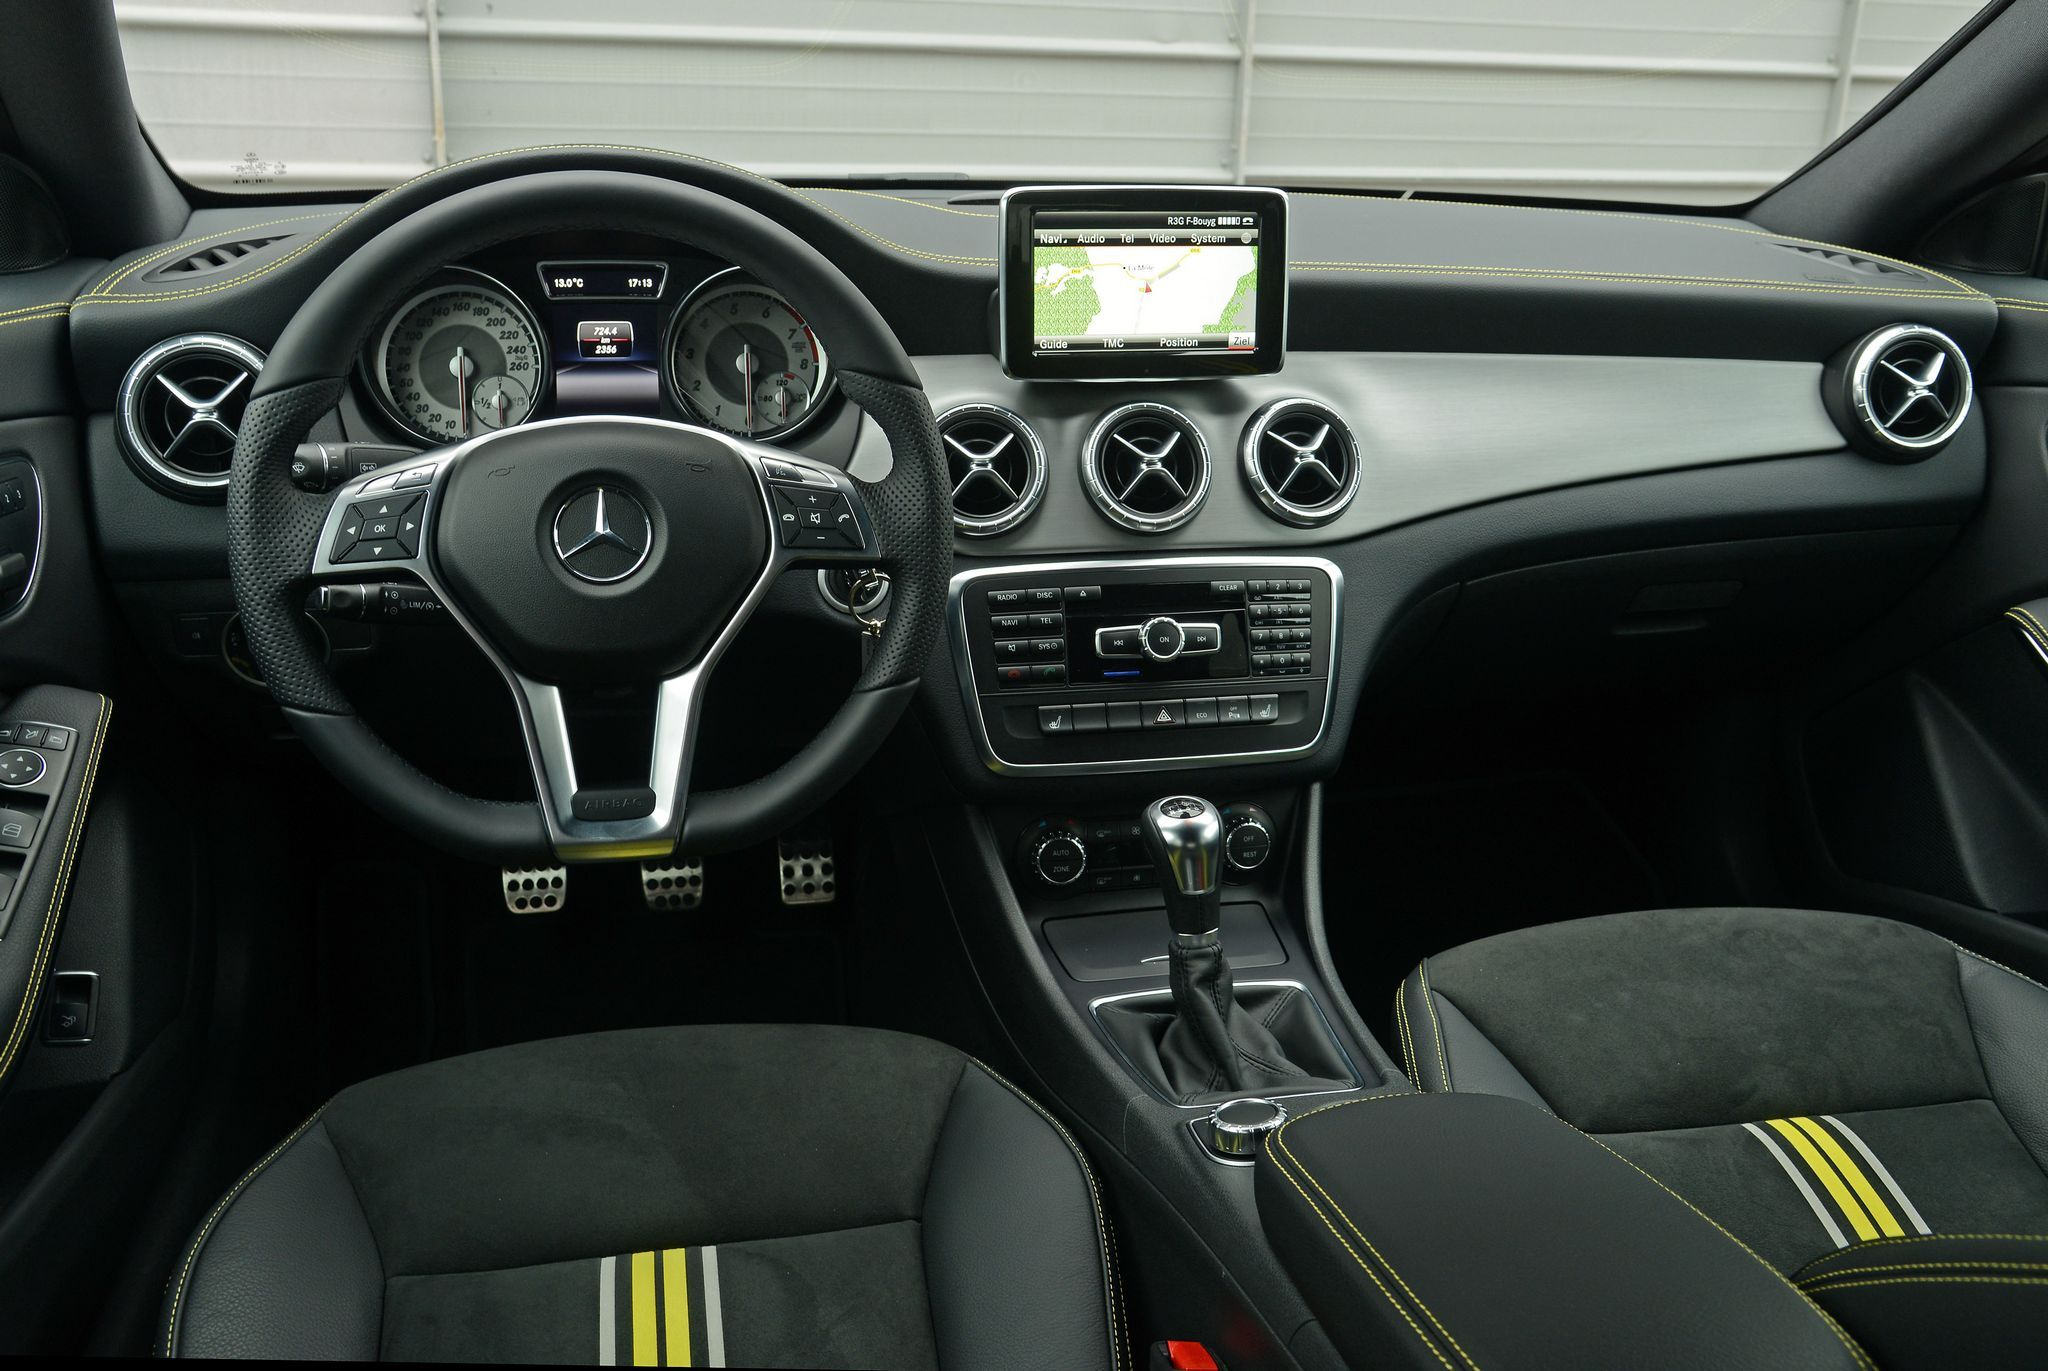 Mercedes-Benz CLA 200 in mountaingrau-metallic #mbhess #mbcars #mbcla